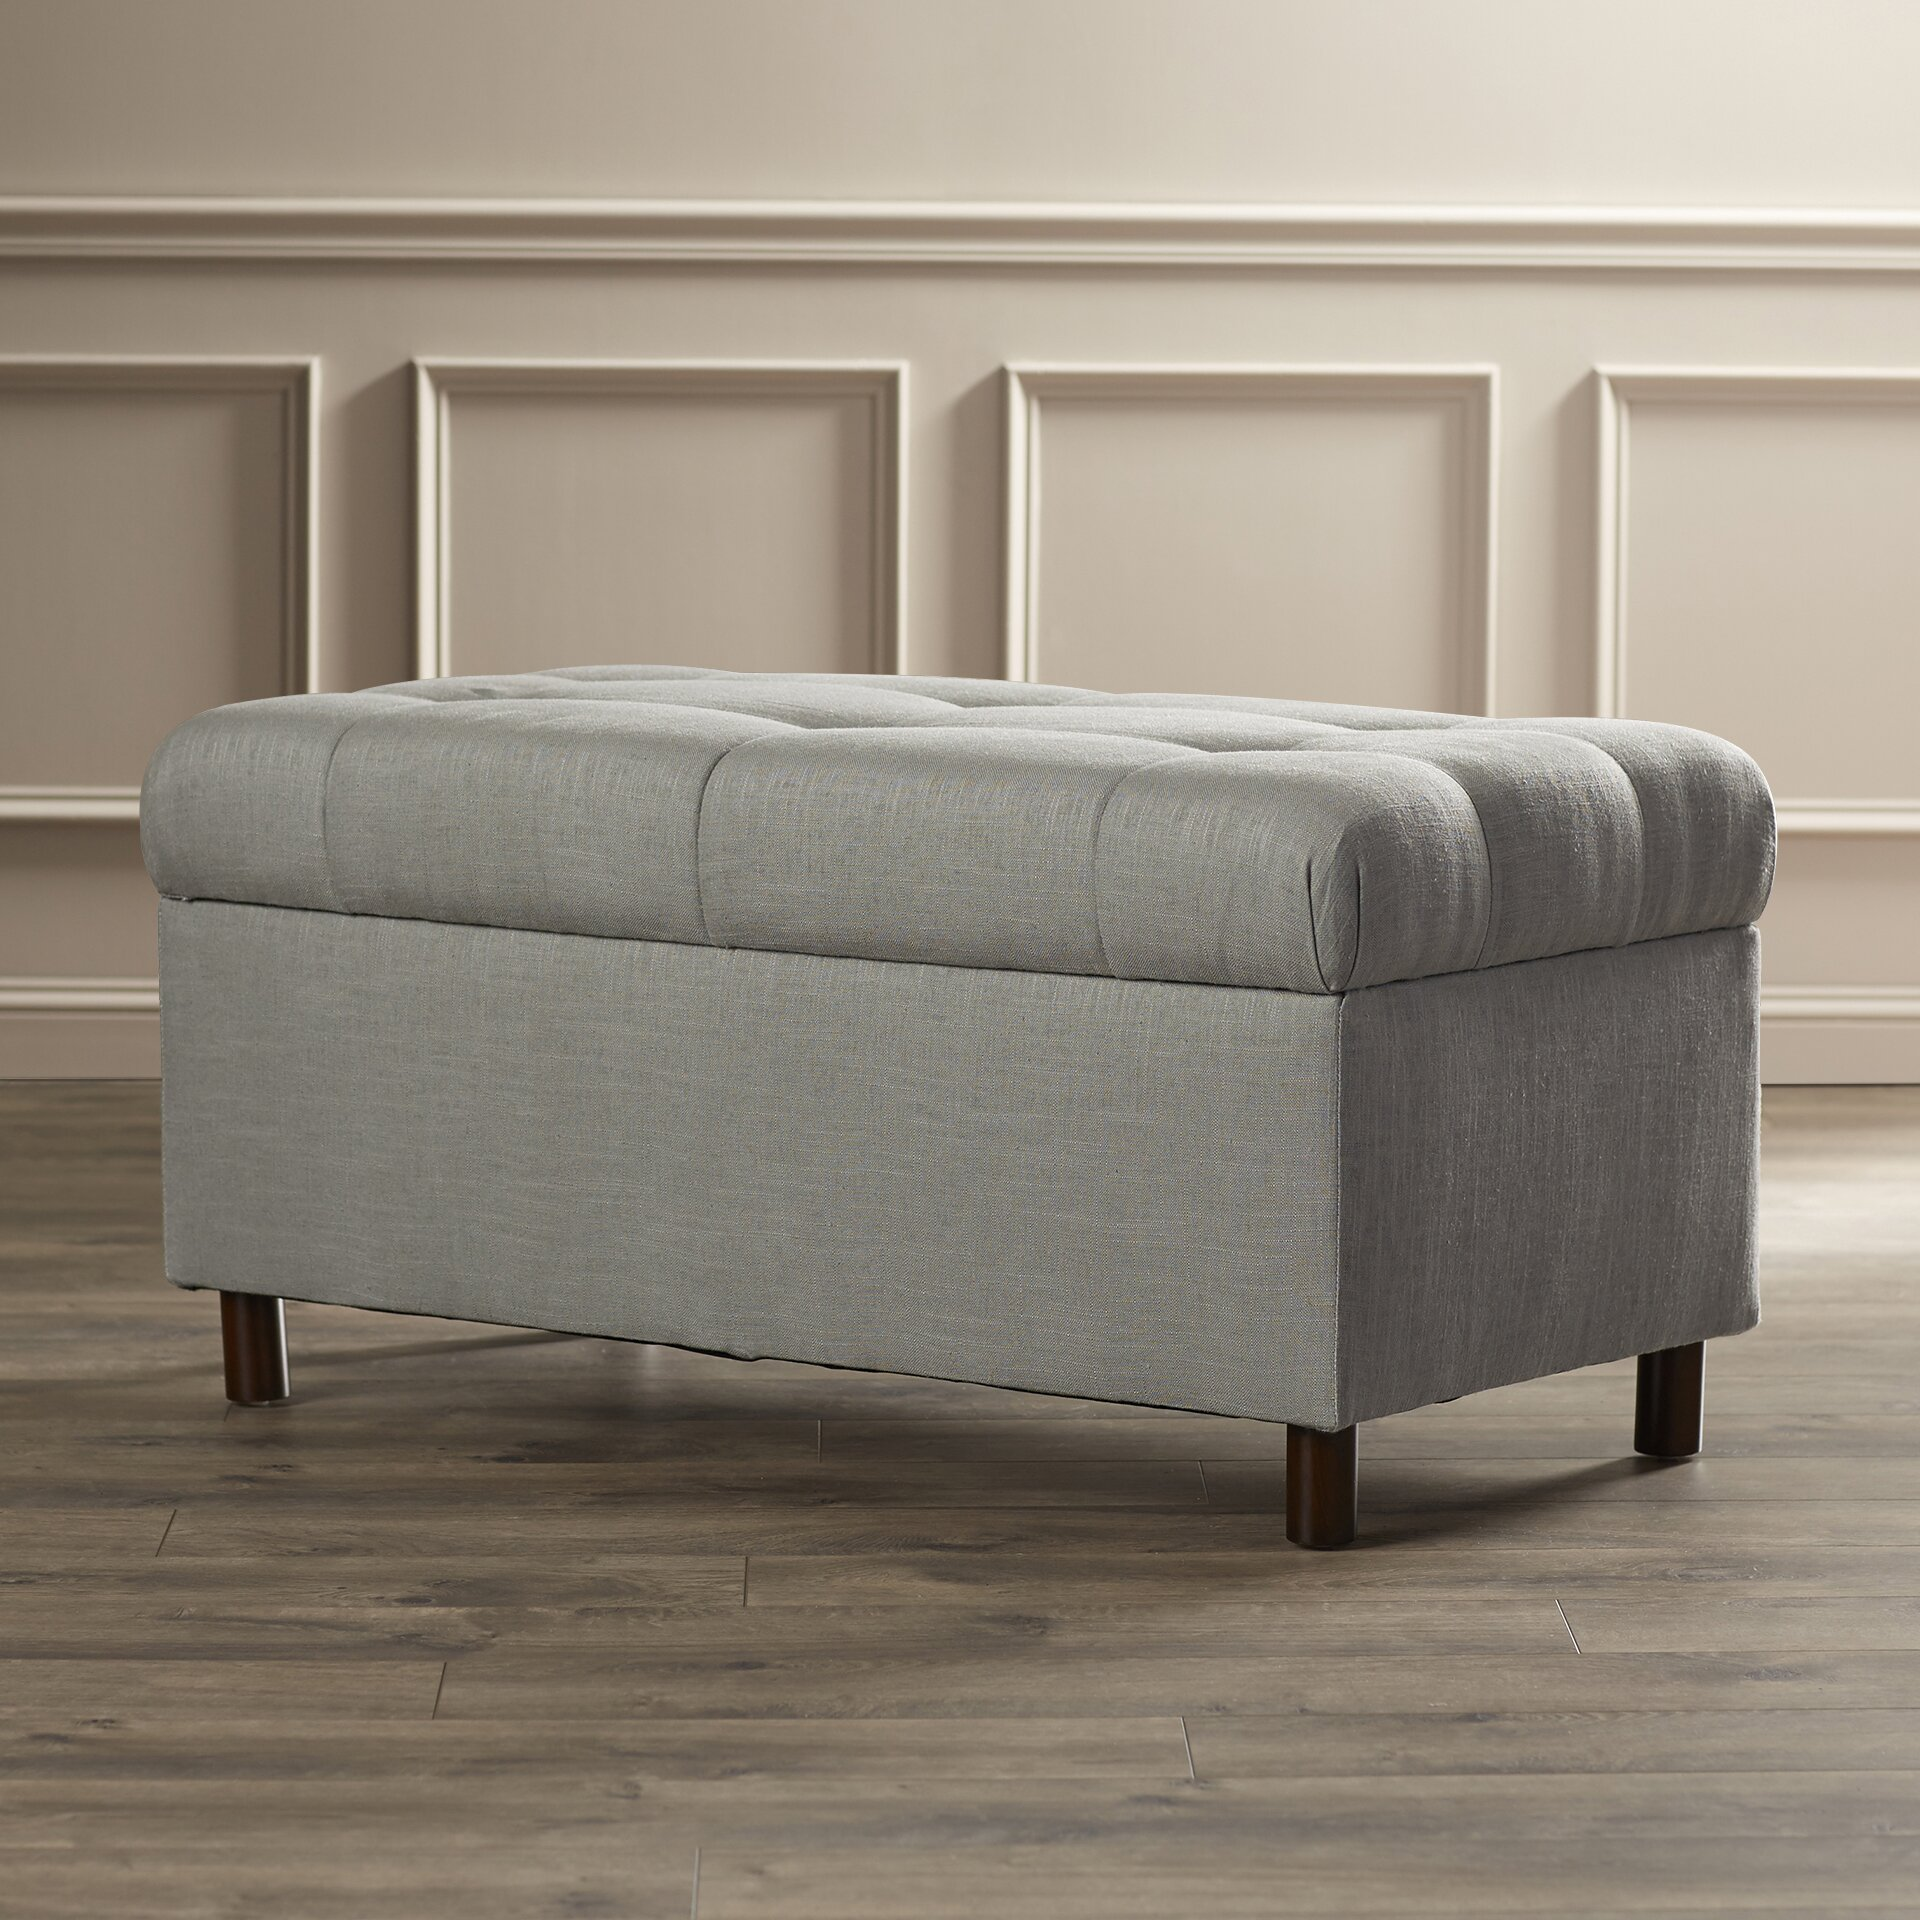 Alcott hill henrietta tufted linen storage bedroom bench reviews wayfair Bedroom storage bench